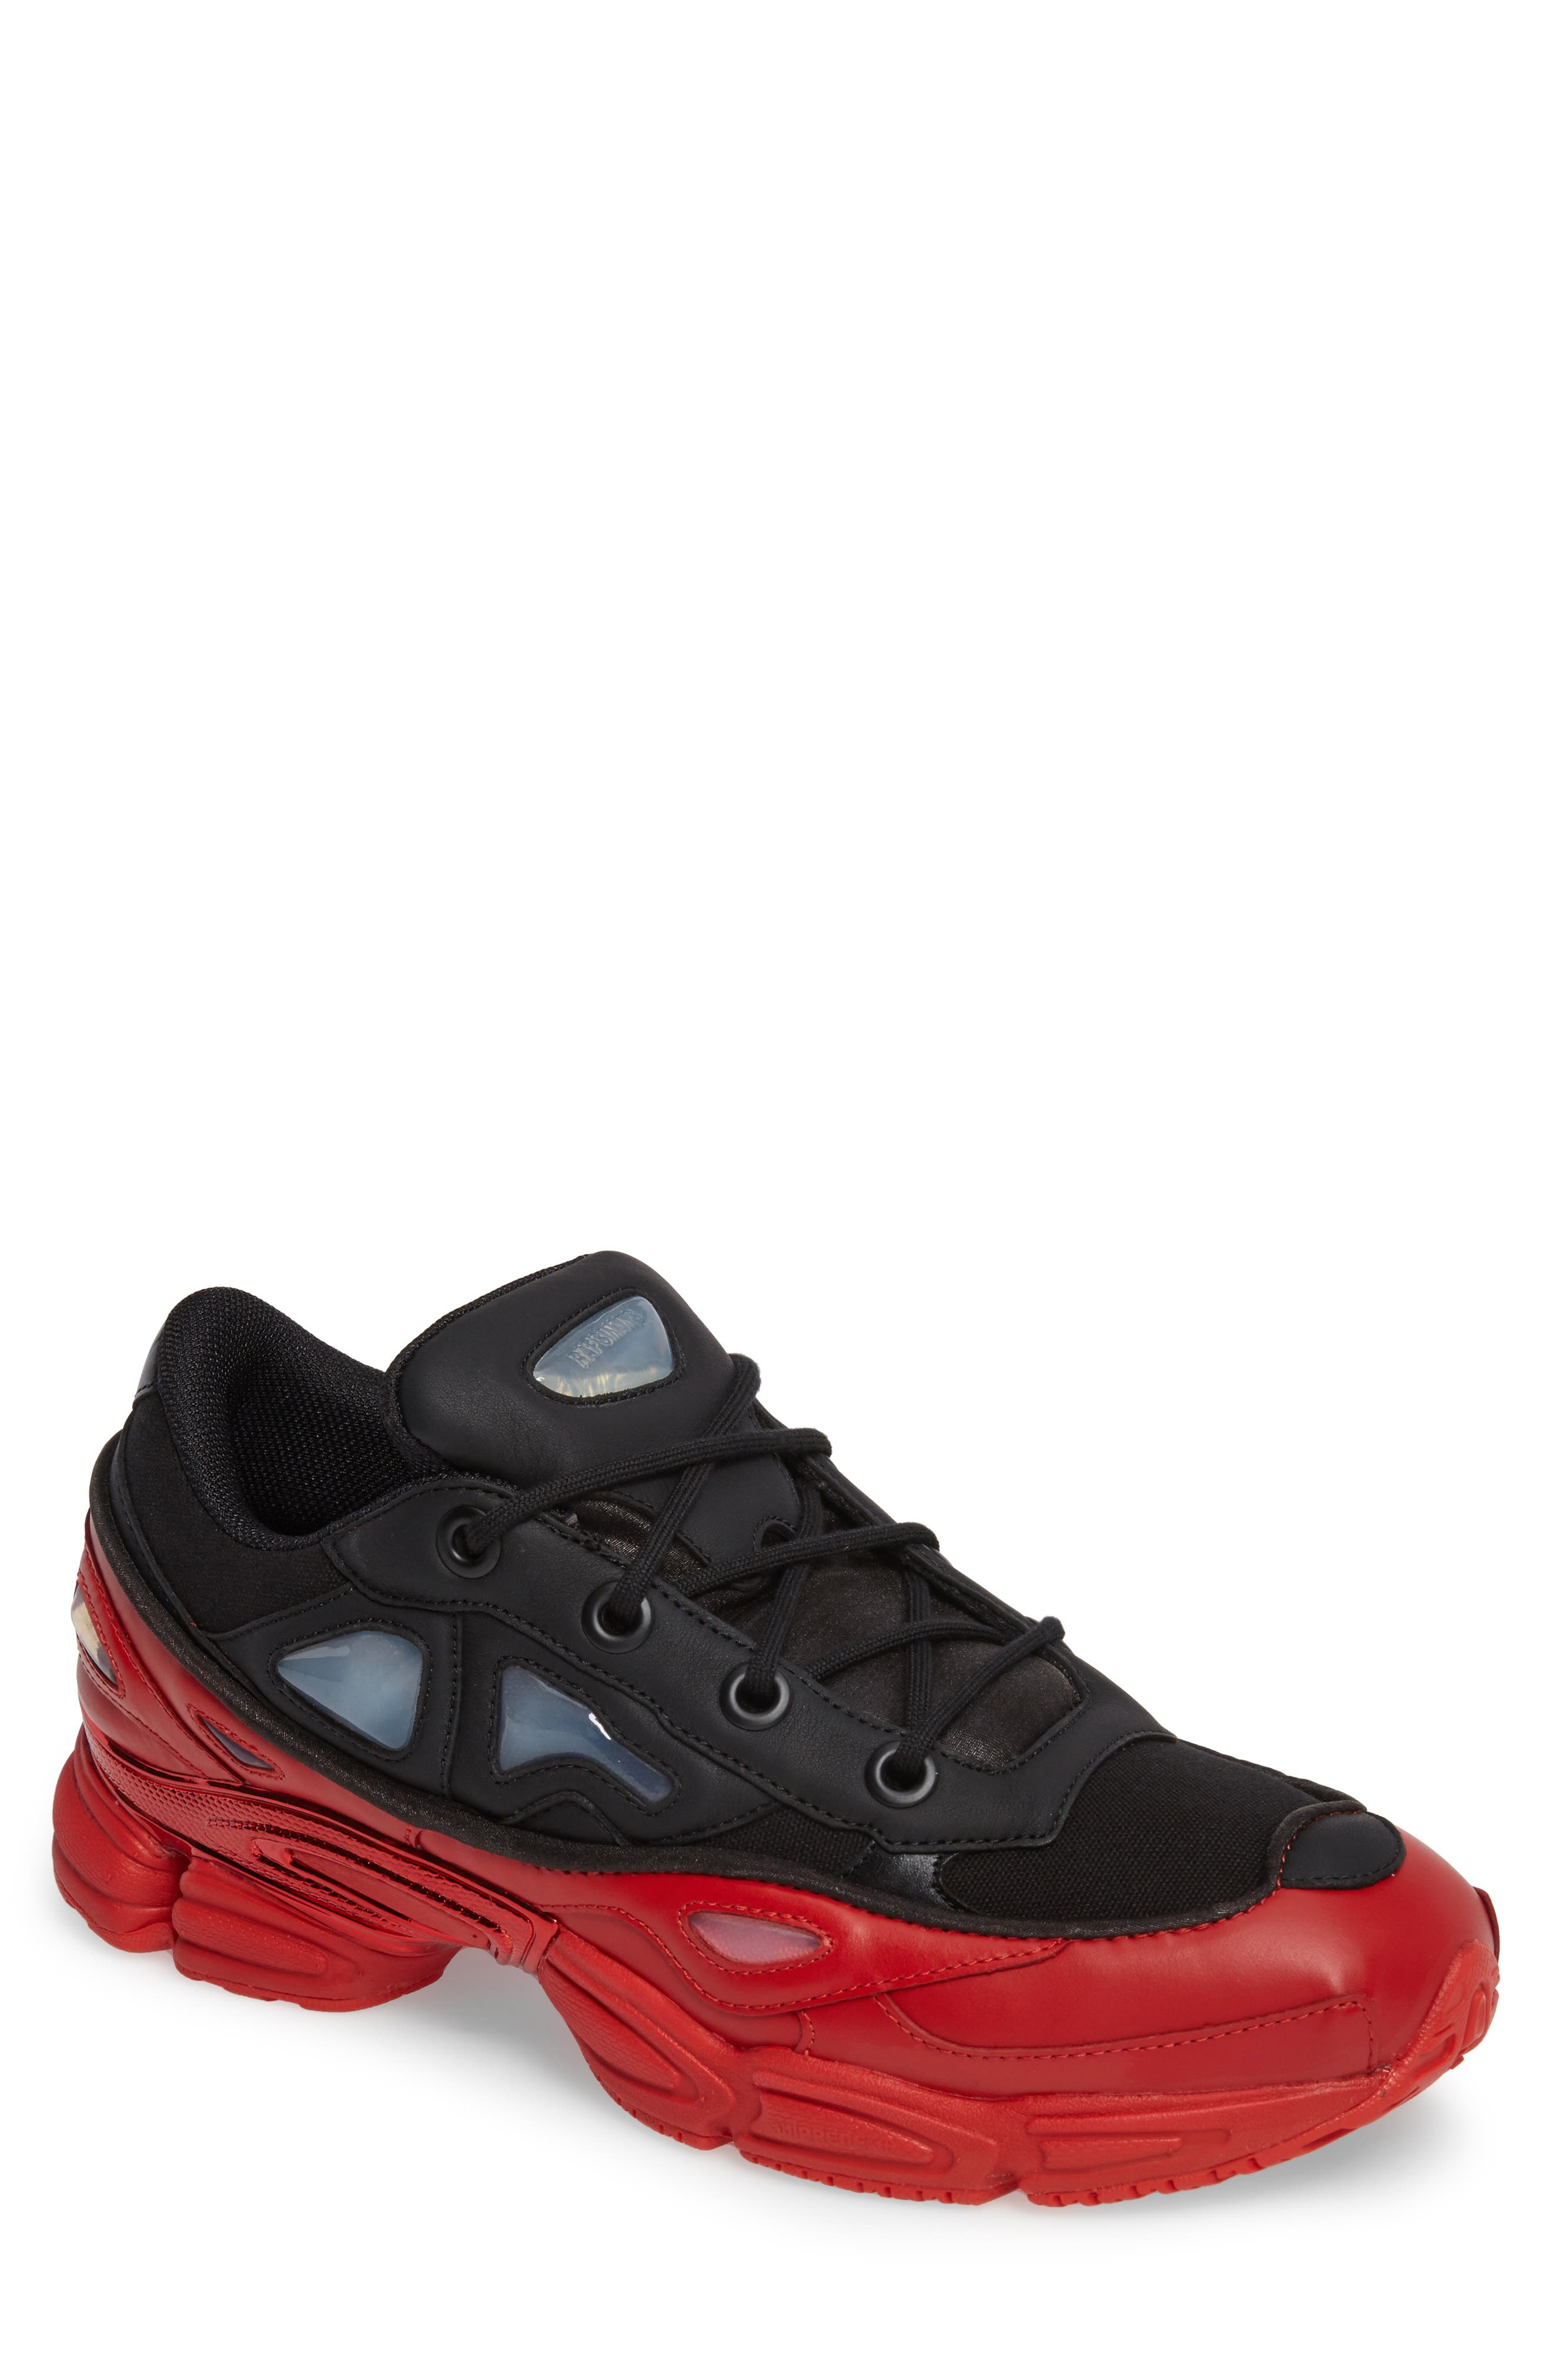 Alternate Image 1 Selected - adidas by Raf Simons Ozweego Bunny Sneaker (Men)